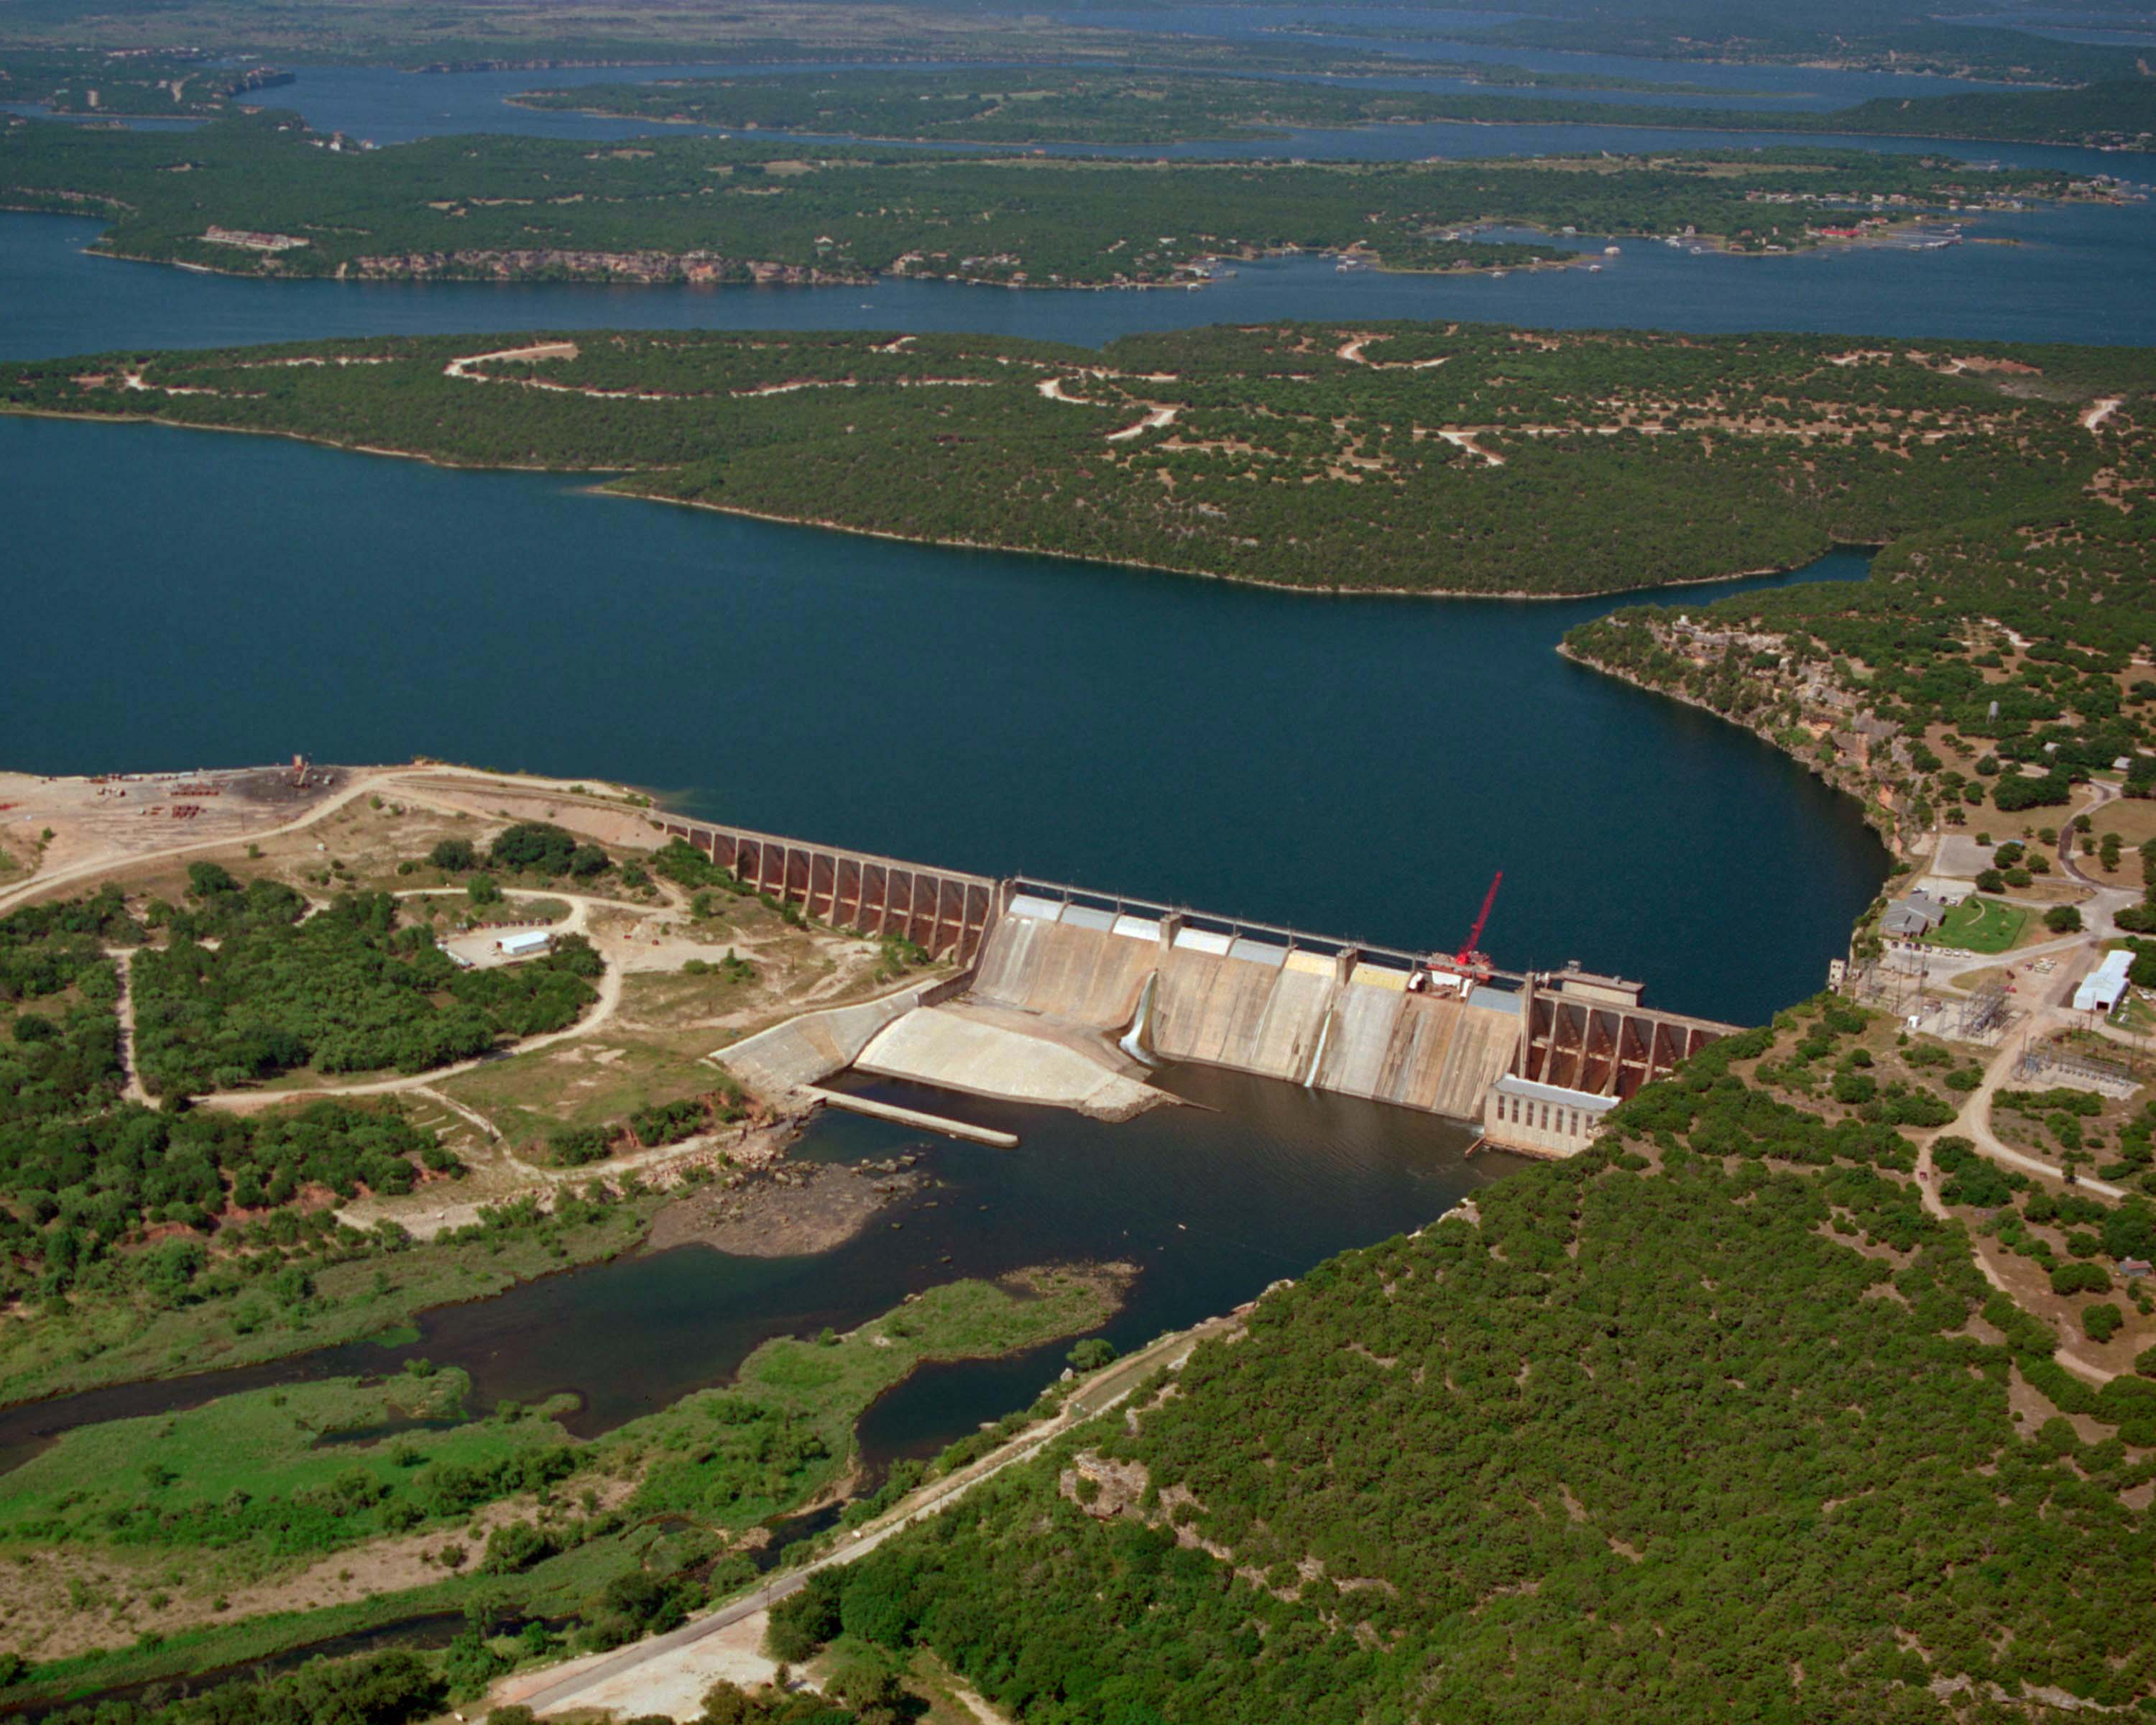 What is Possum Kingdom Lake?